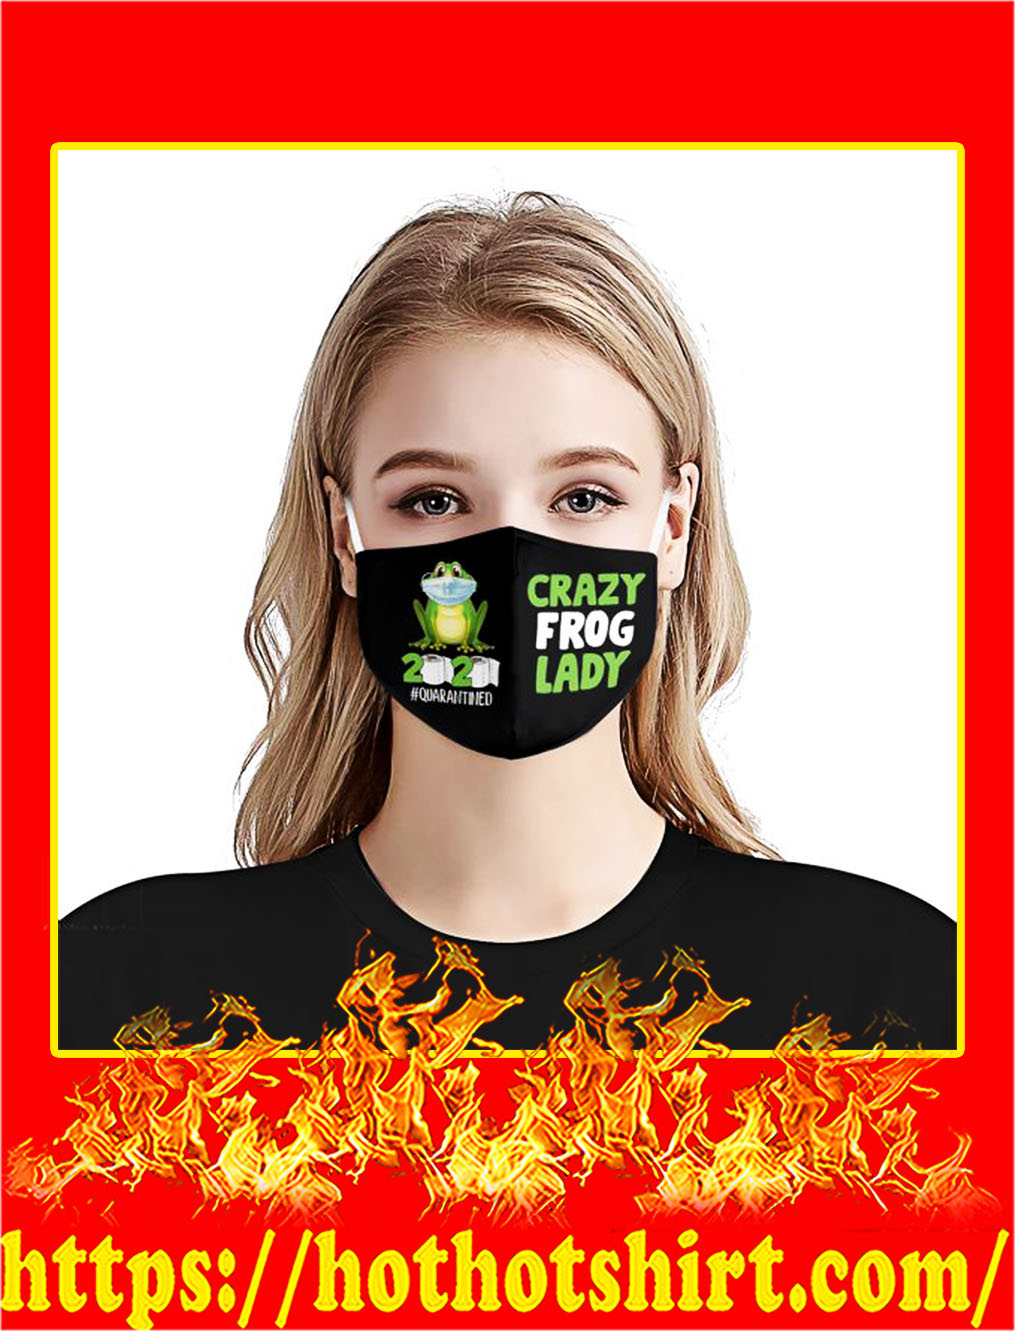 Crazy frog lady 2020 quarantined face mask- pic 1